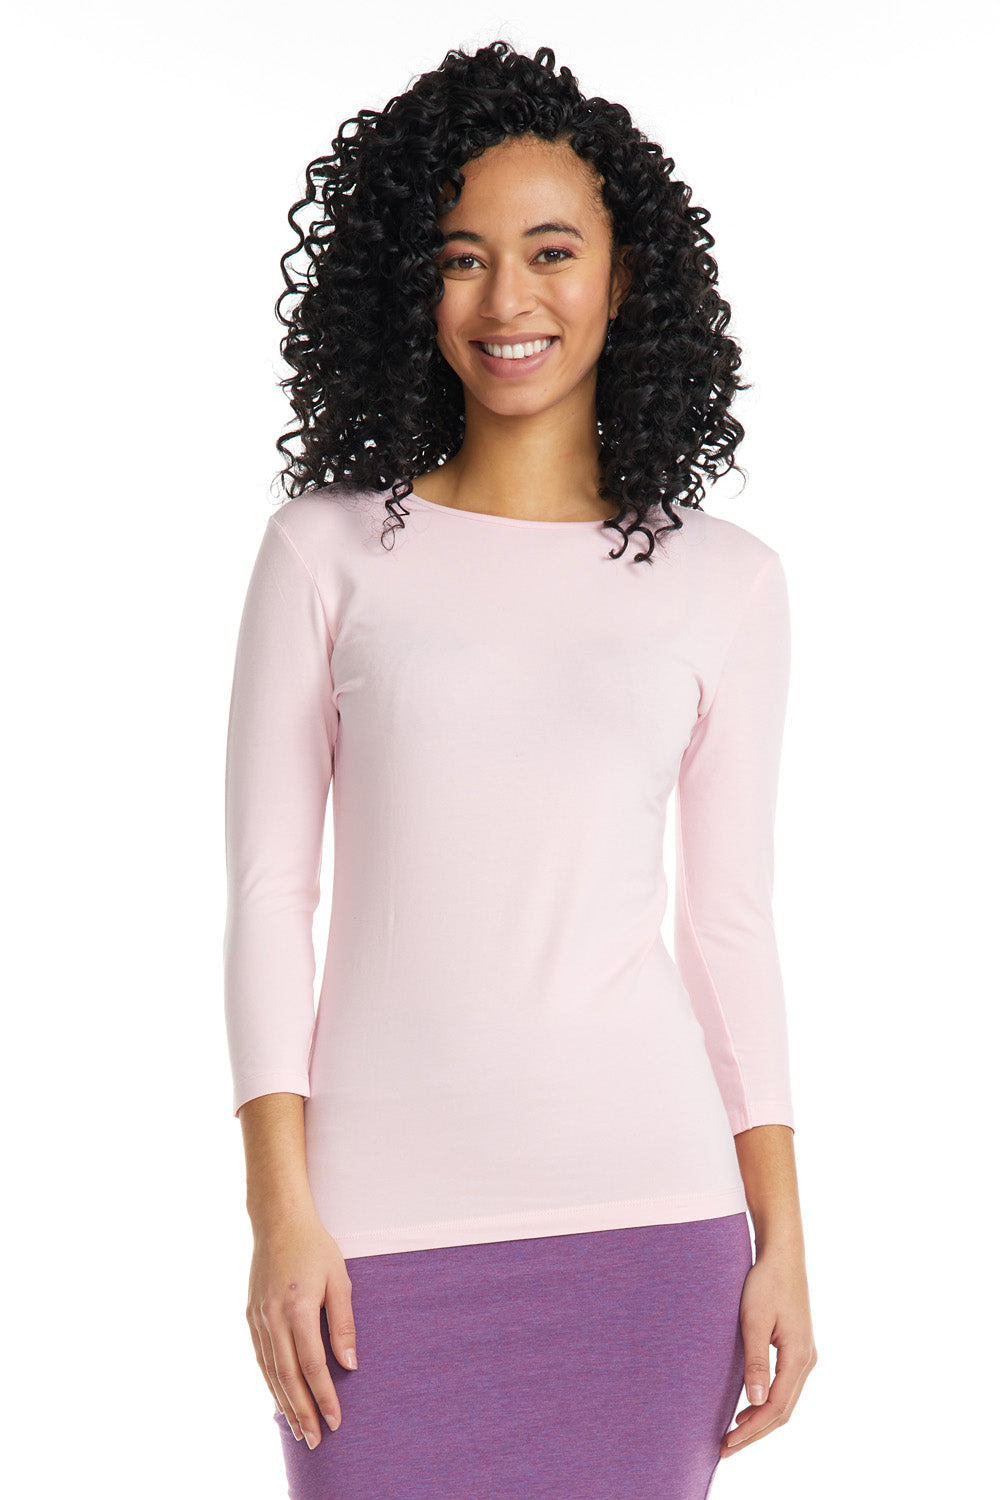 Esteez ¾ Sleeve Cotton Spandex SNUG FIT Layering Shirt for WOMEN - PINK